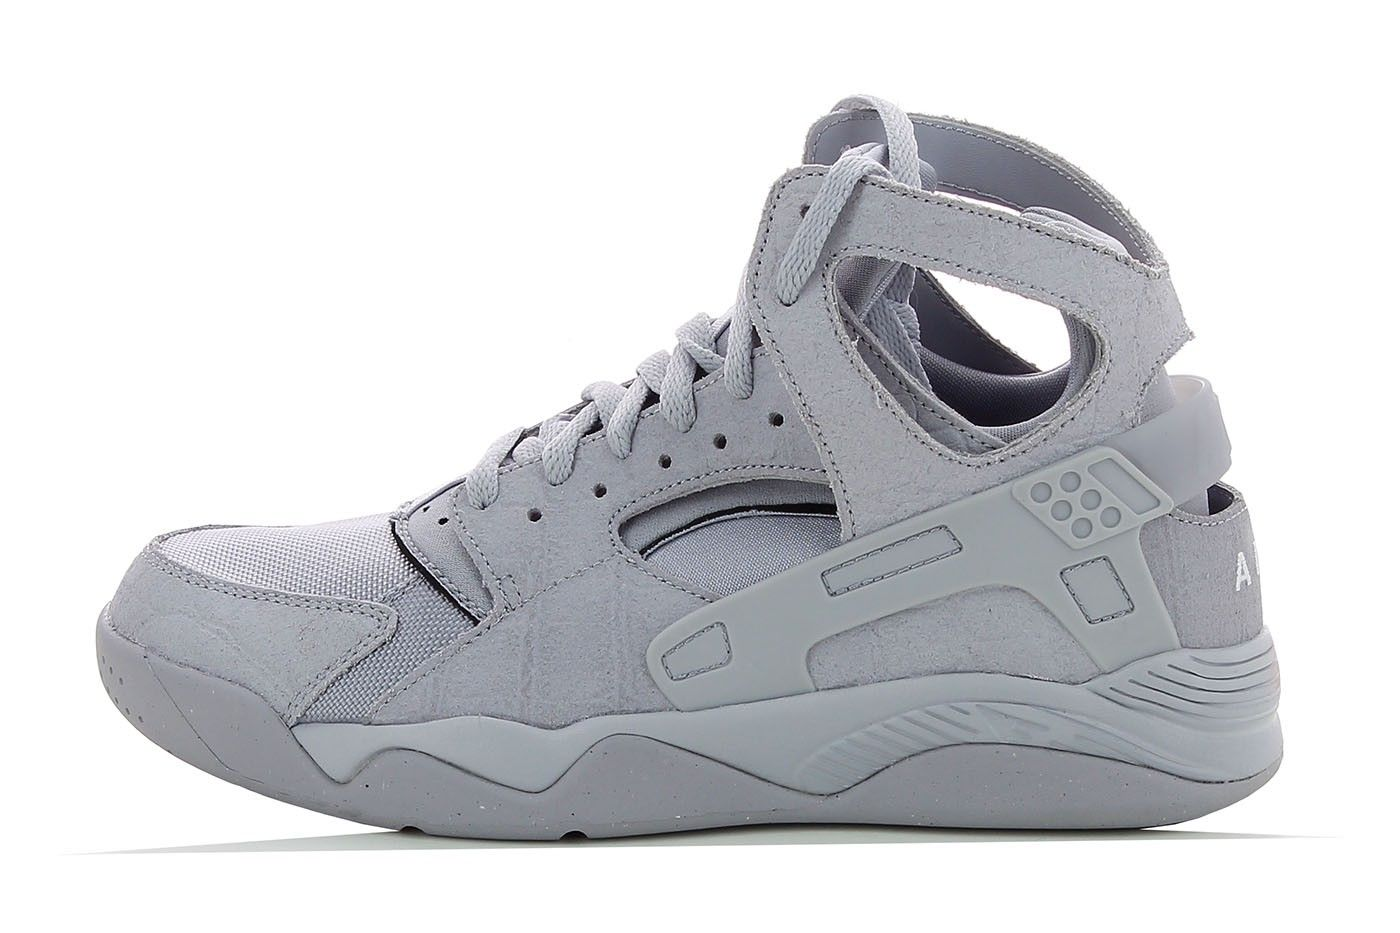 new styles f44e5 6b2a5 Basket Nike Air Flight Huarache - 705005-099 - Pegashoes